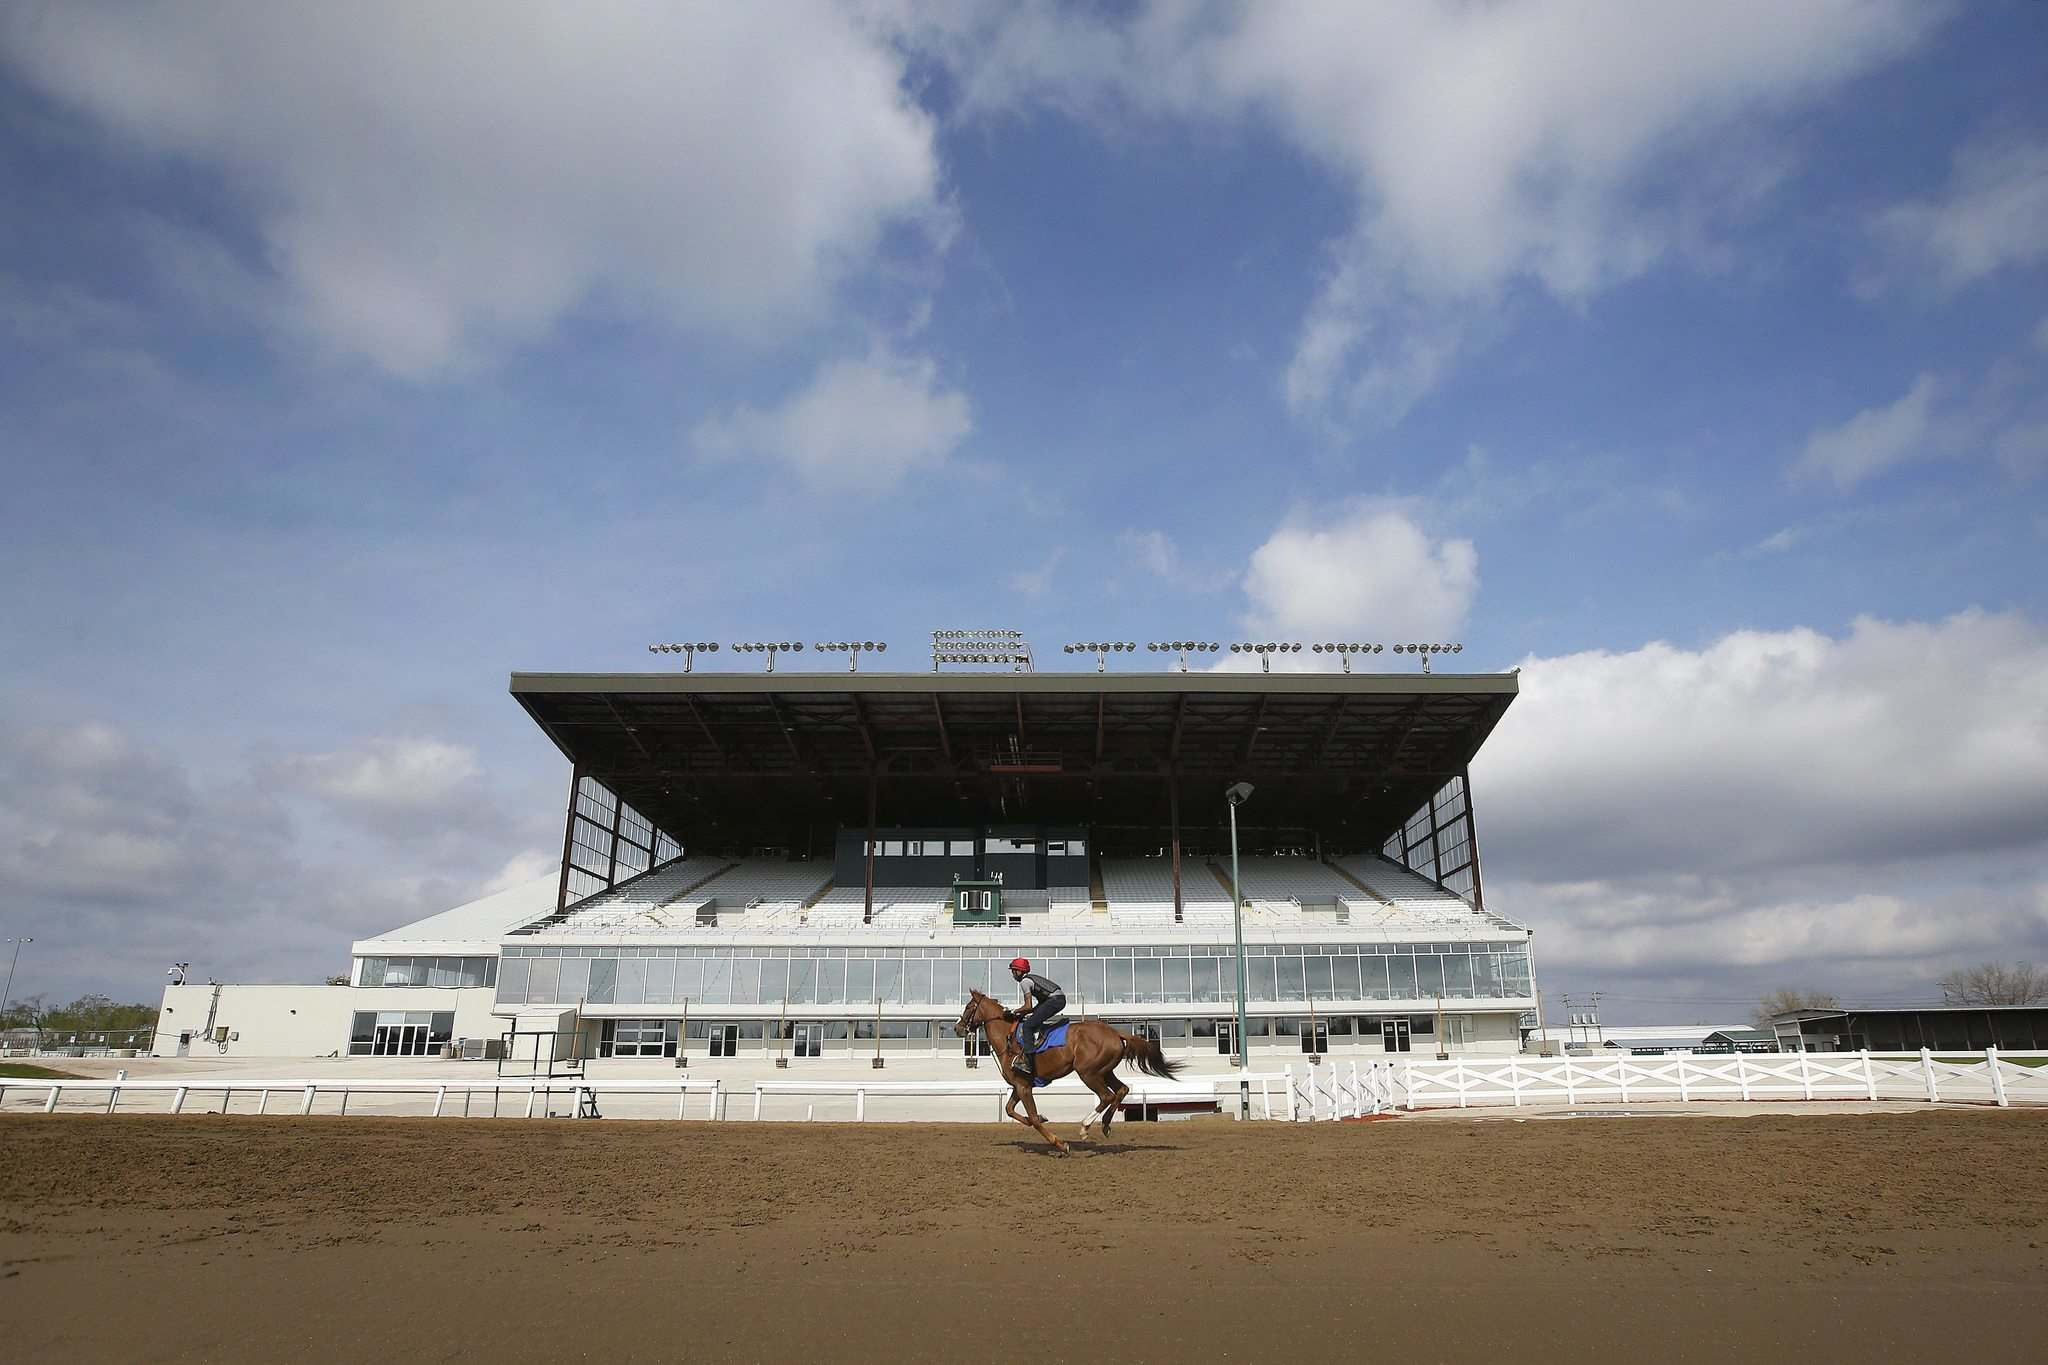 Jockey Richard Mangalee rides a race horse Sunday at Assiniboia Downs. Racing begins tonight but there will be no live spectators due to the COVID-19 pandemic. (John Woods / Winnipeg Free Press)</p>